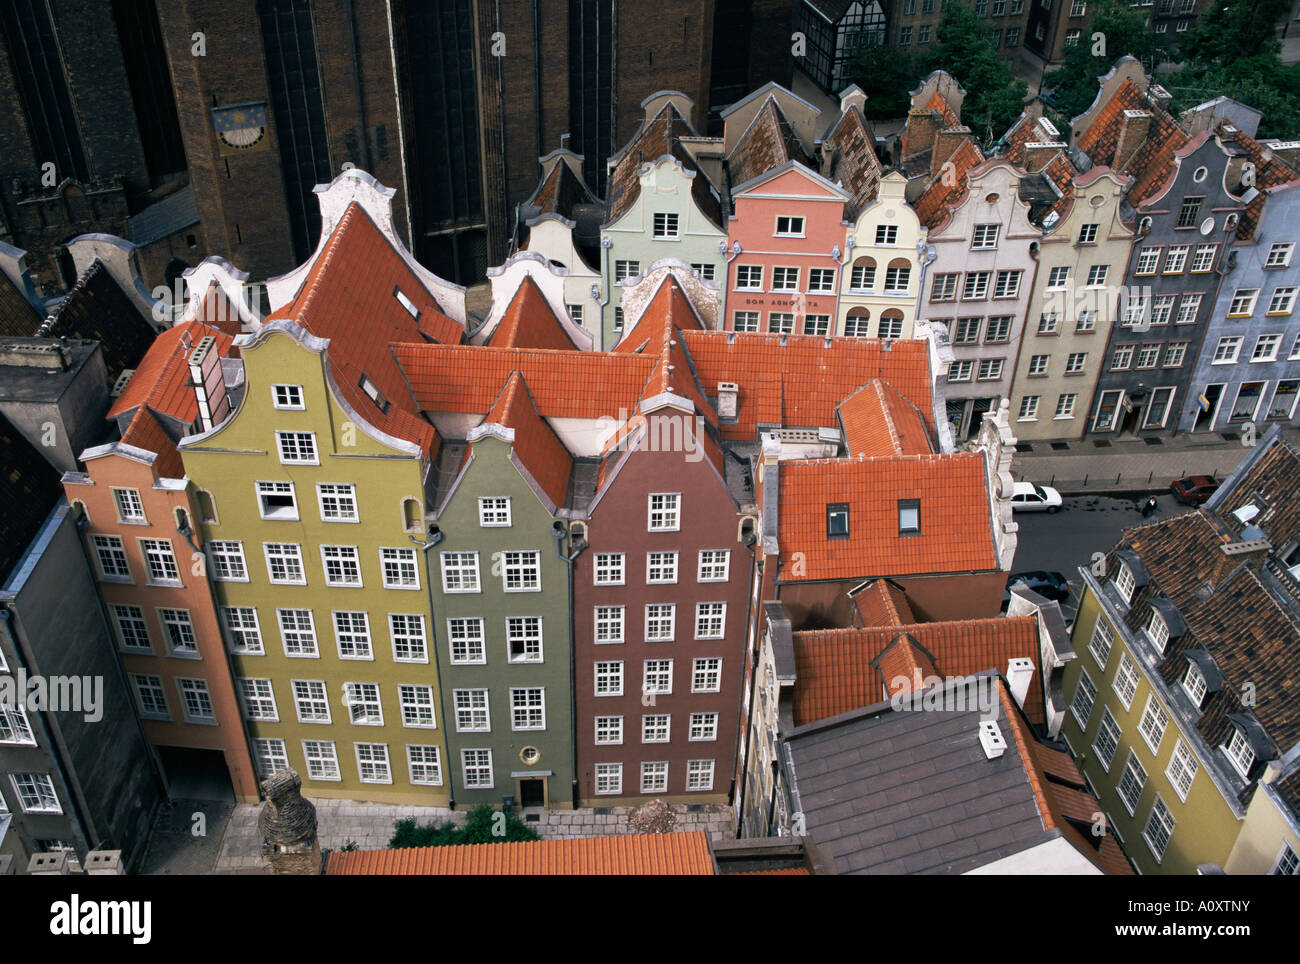 Gables and painted facades of Hanseatic Gdansk Gdansk Pomerania Poland Europe - Stock Image